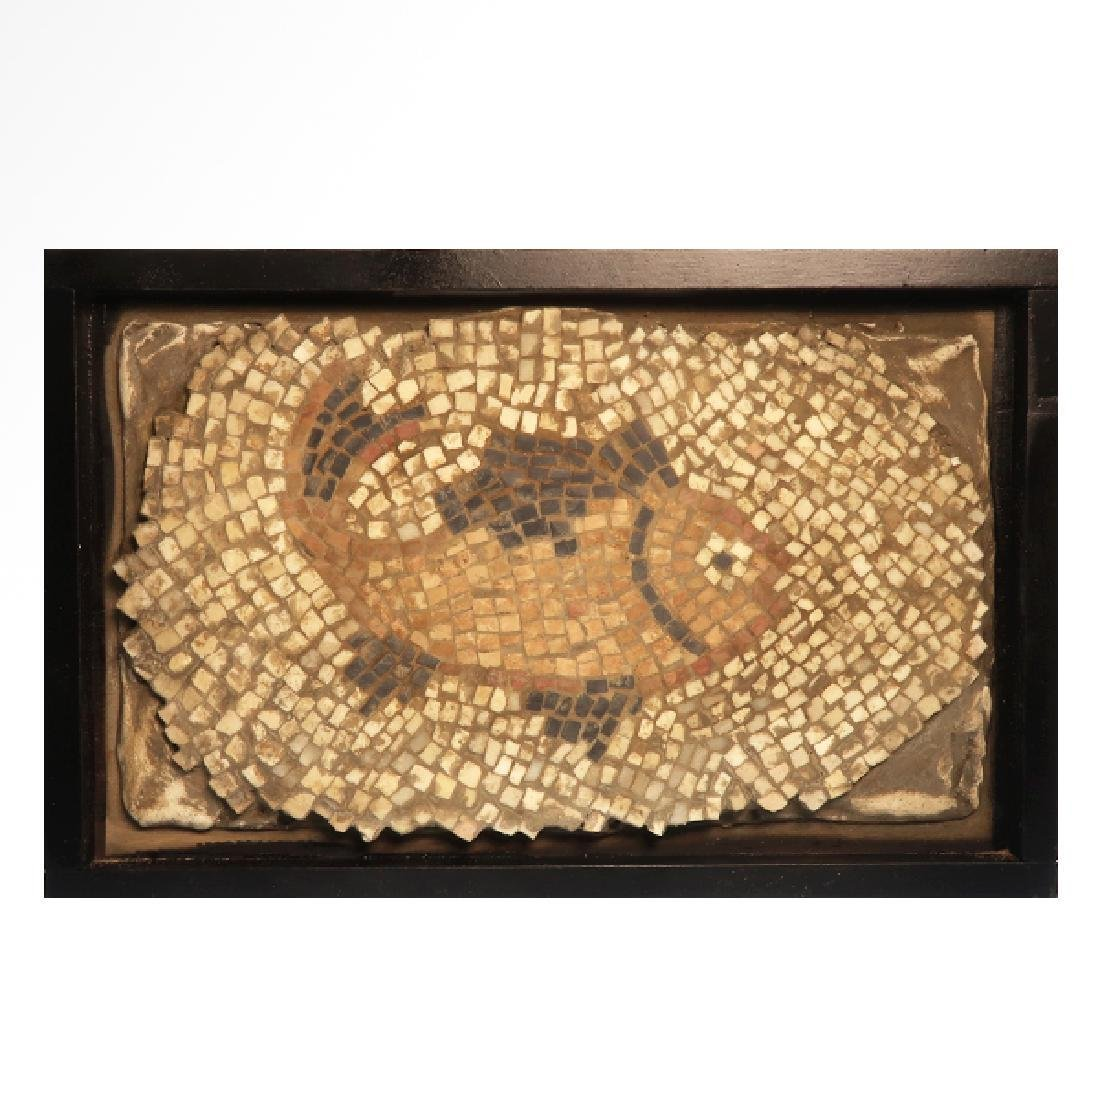 Roman Mosaic Panel with Fish, c. 4th-6th Century A.D. - 2